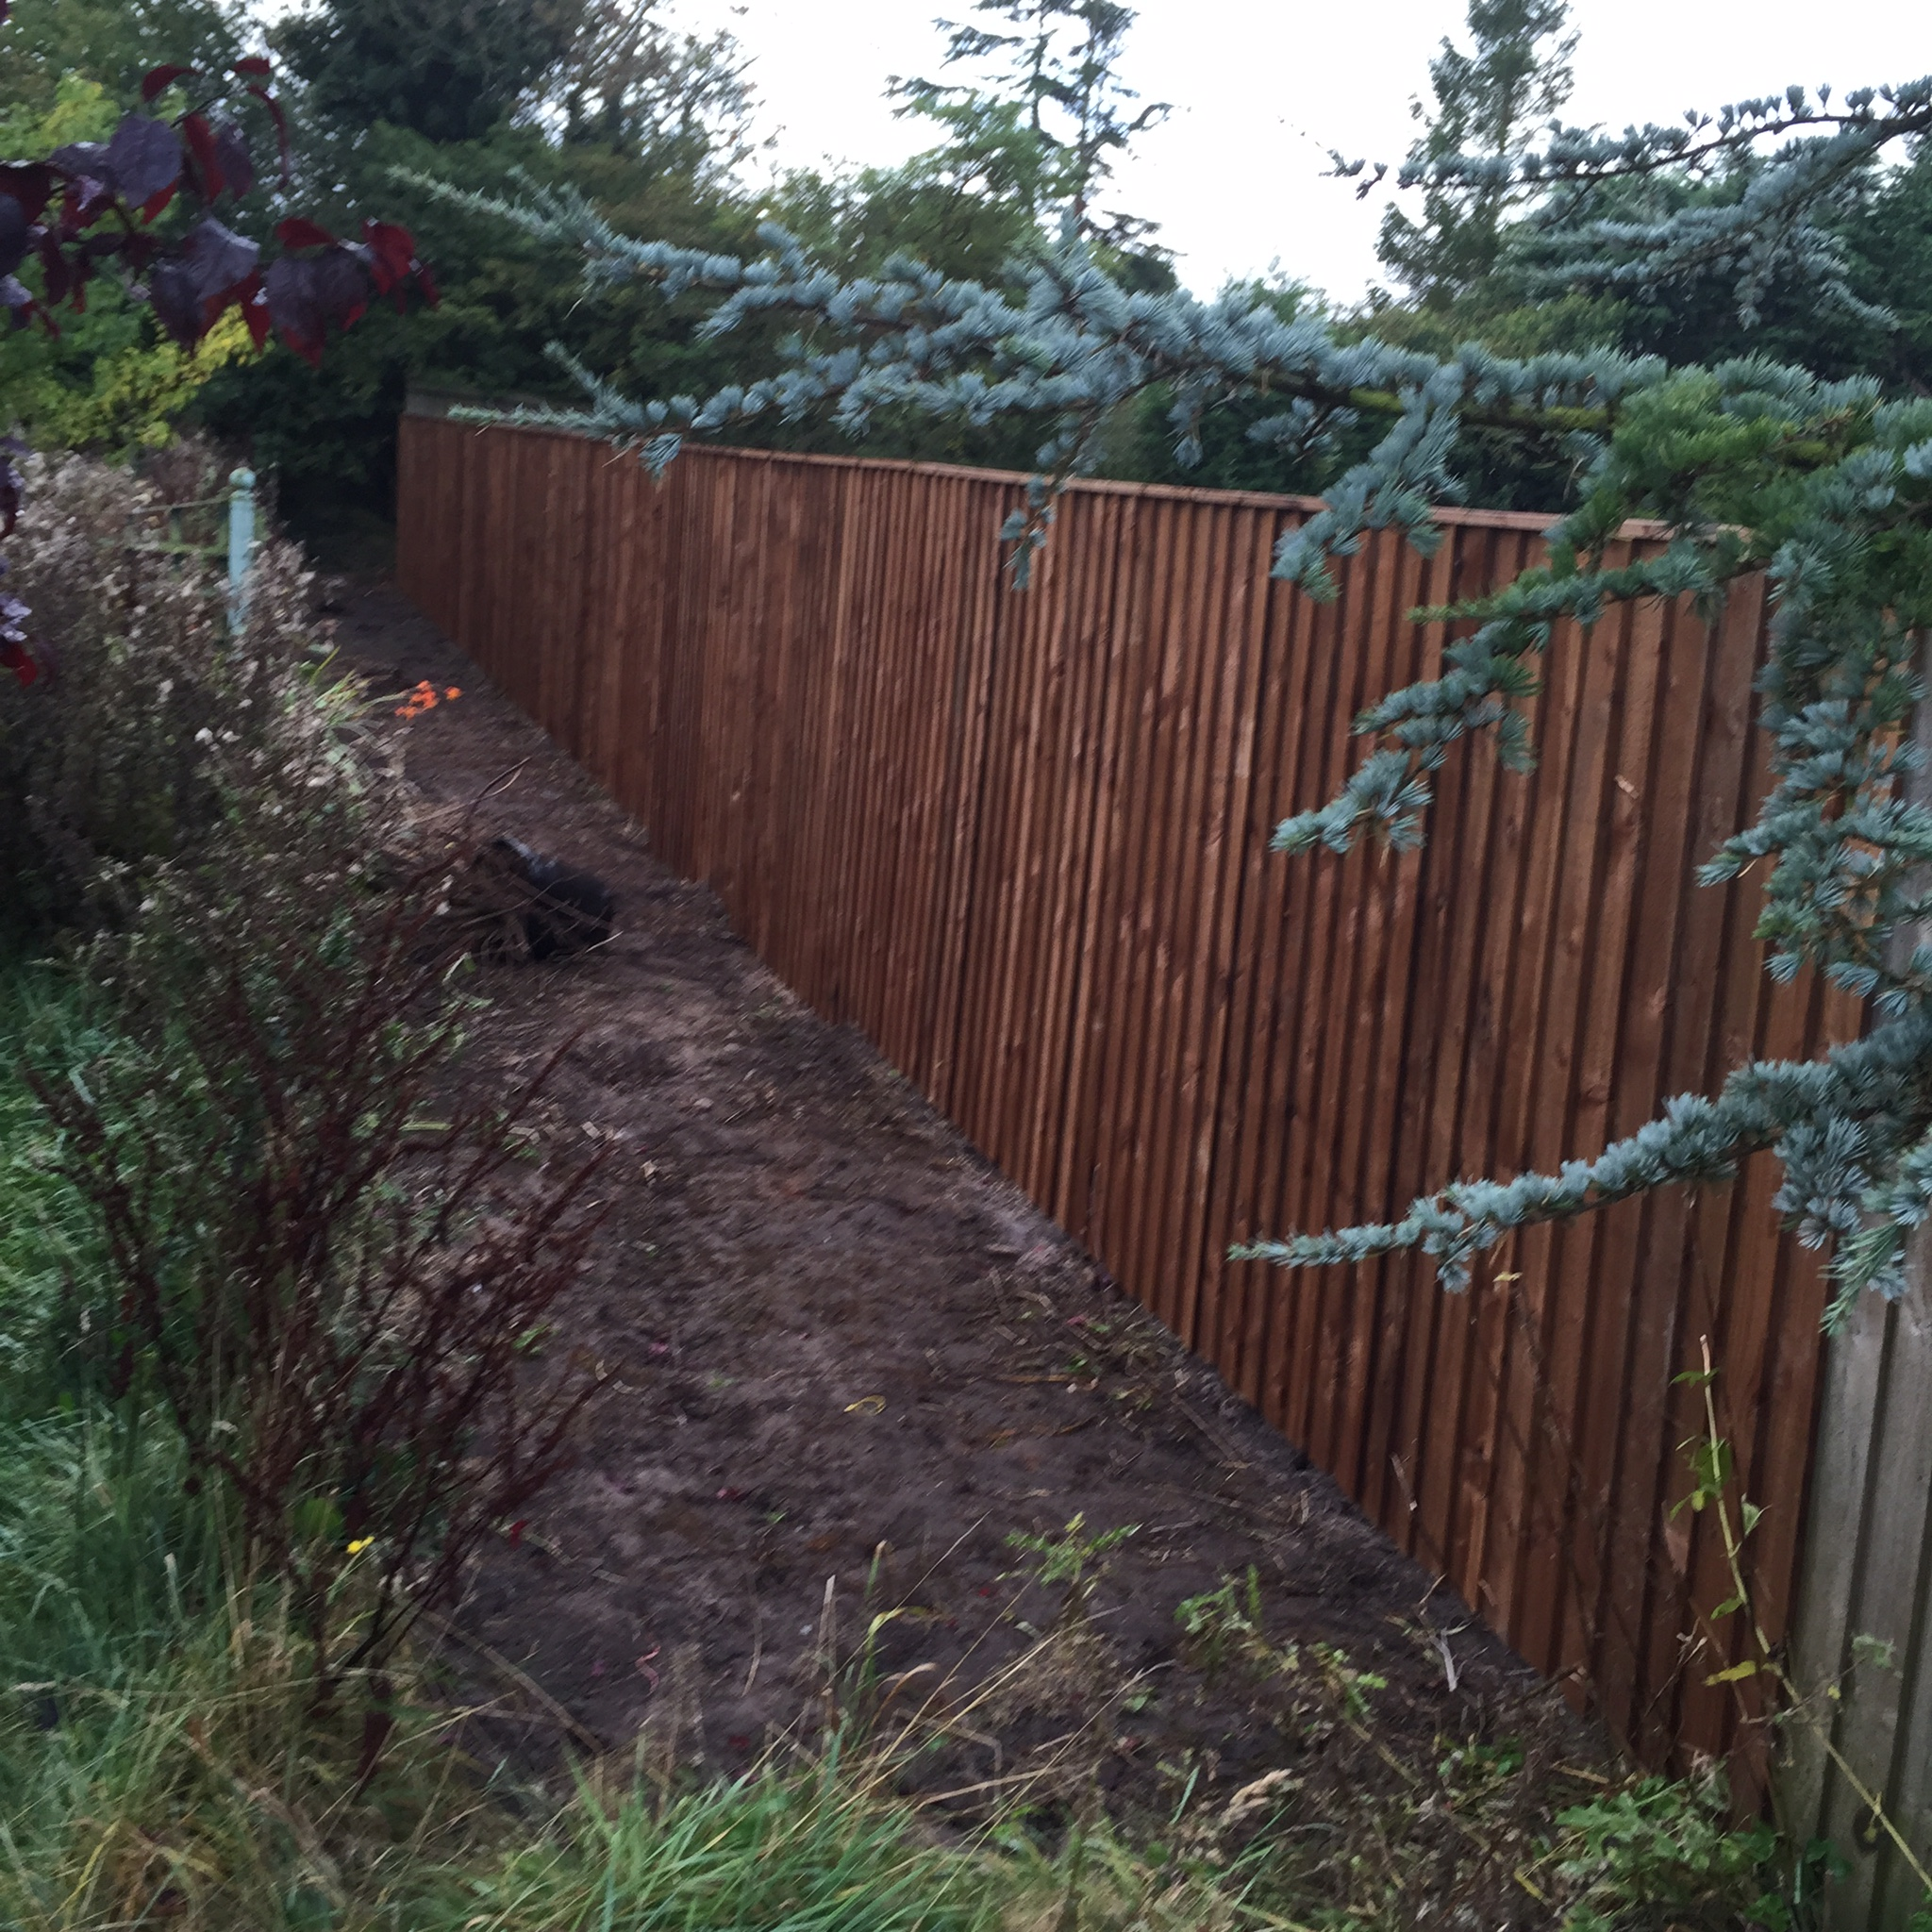 Wooden Fence supply and installation in Dalton Lancashire - PJC